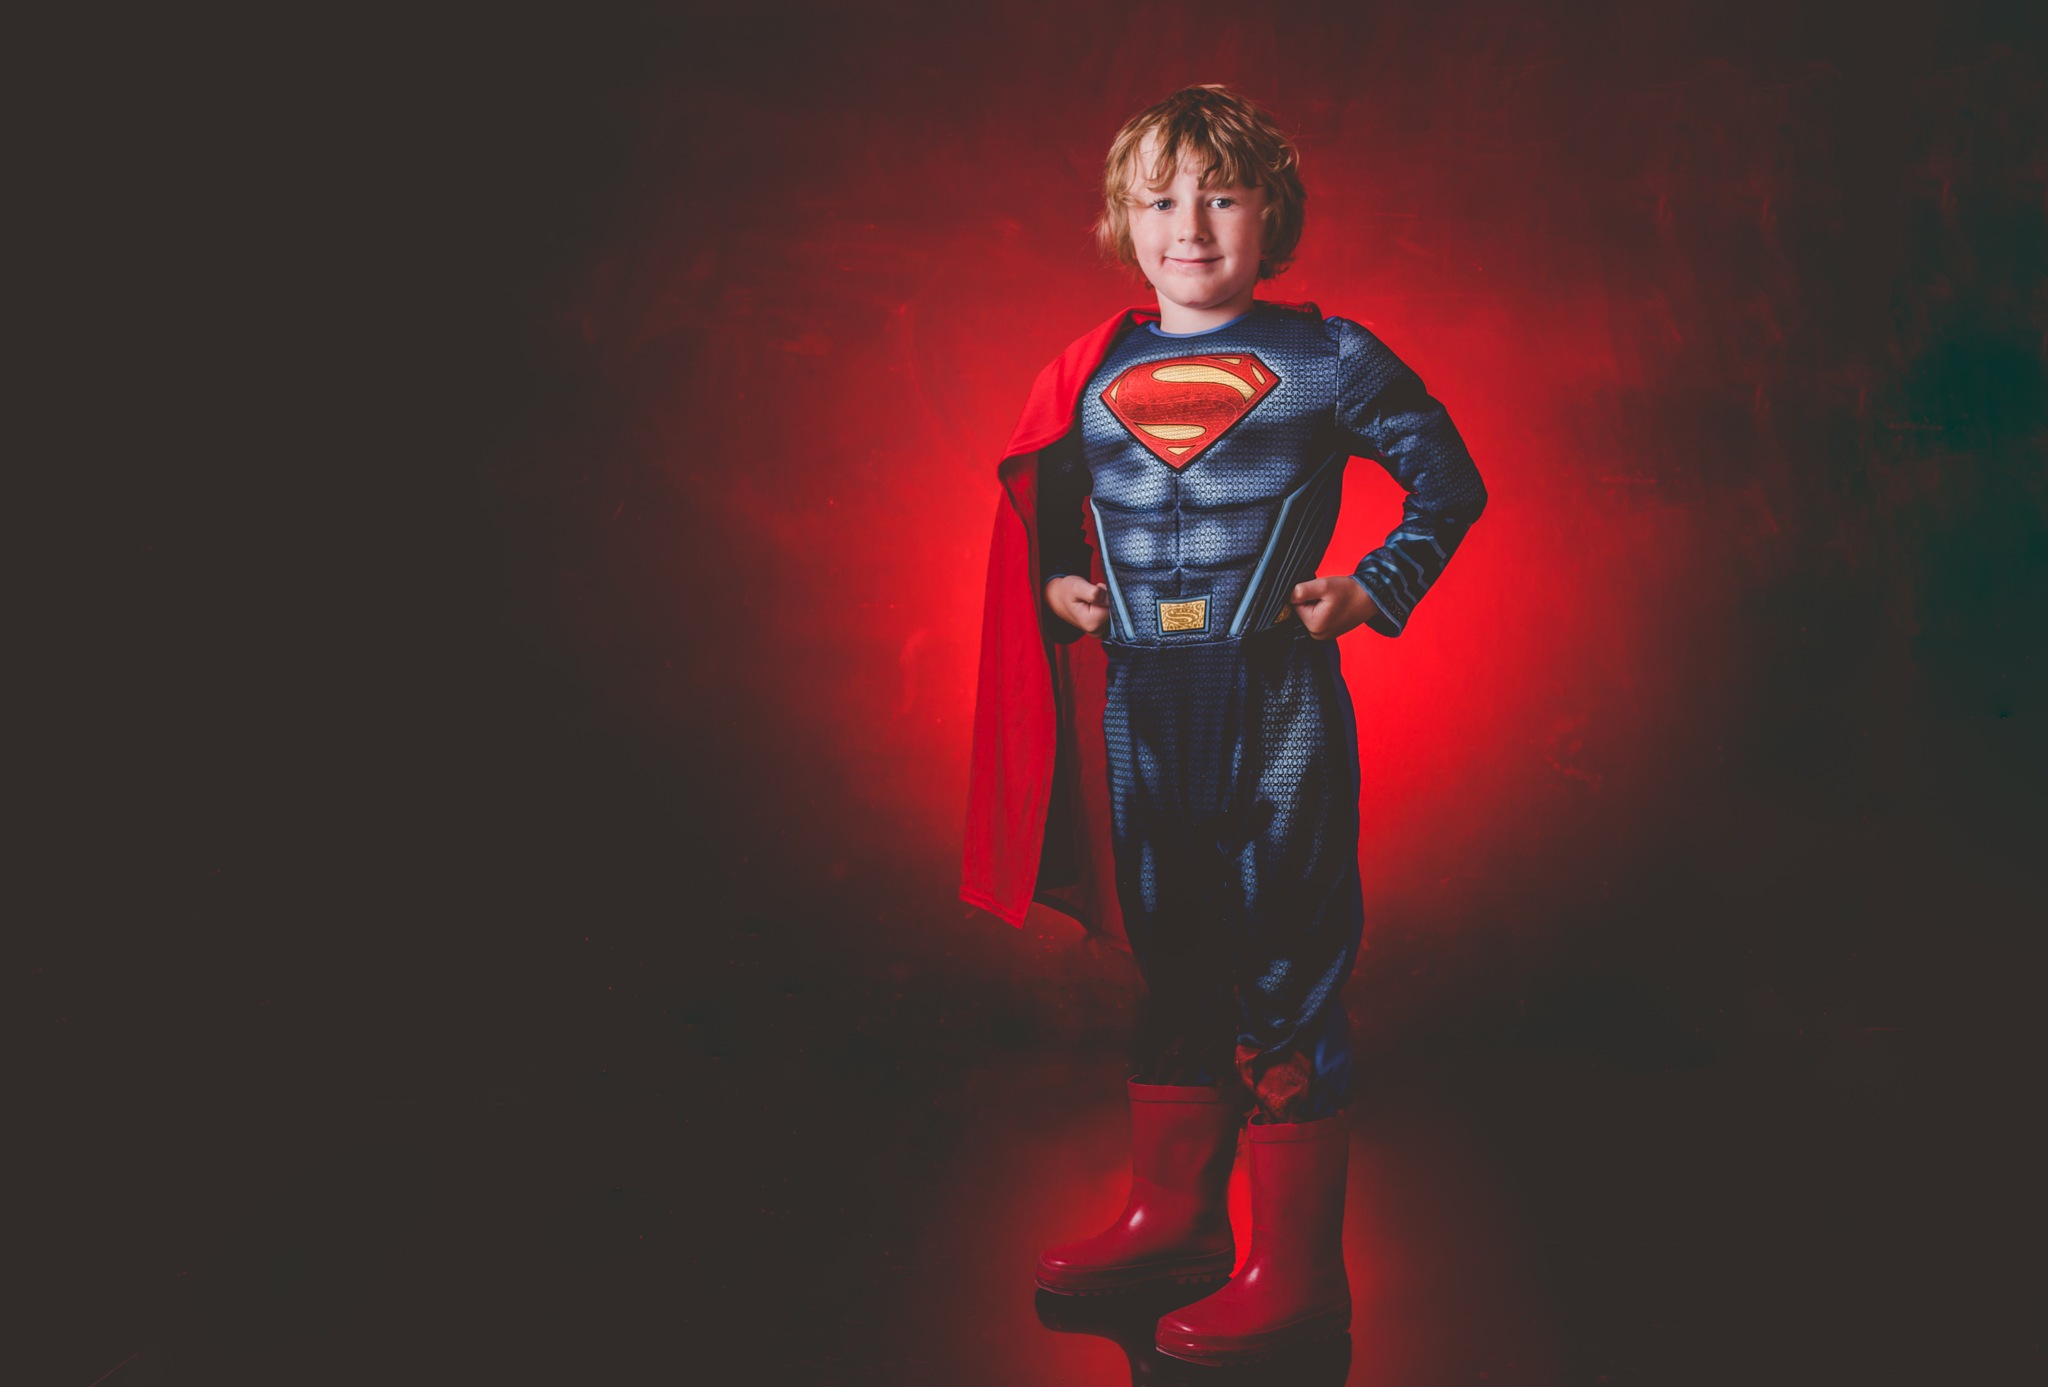 super kid by Steven sparkes